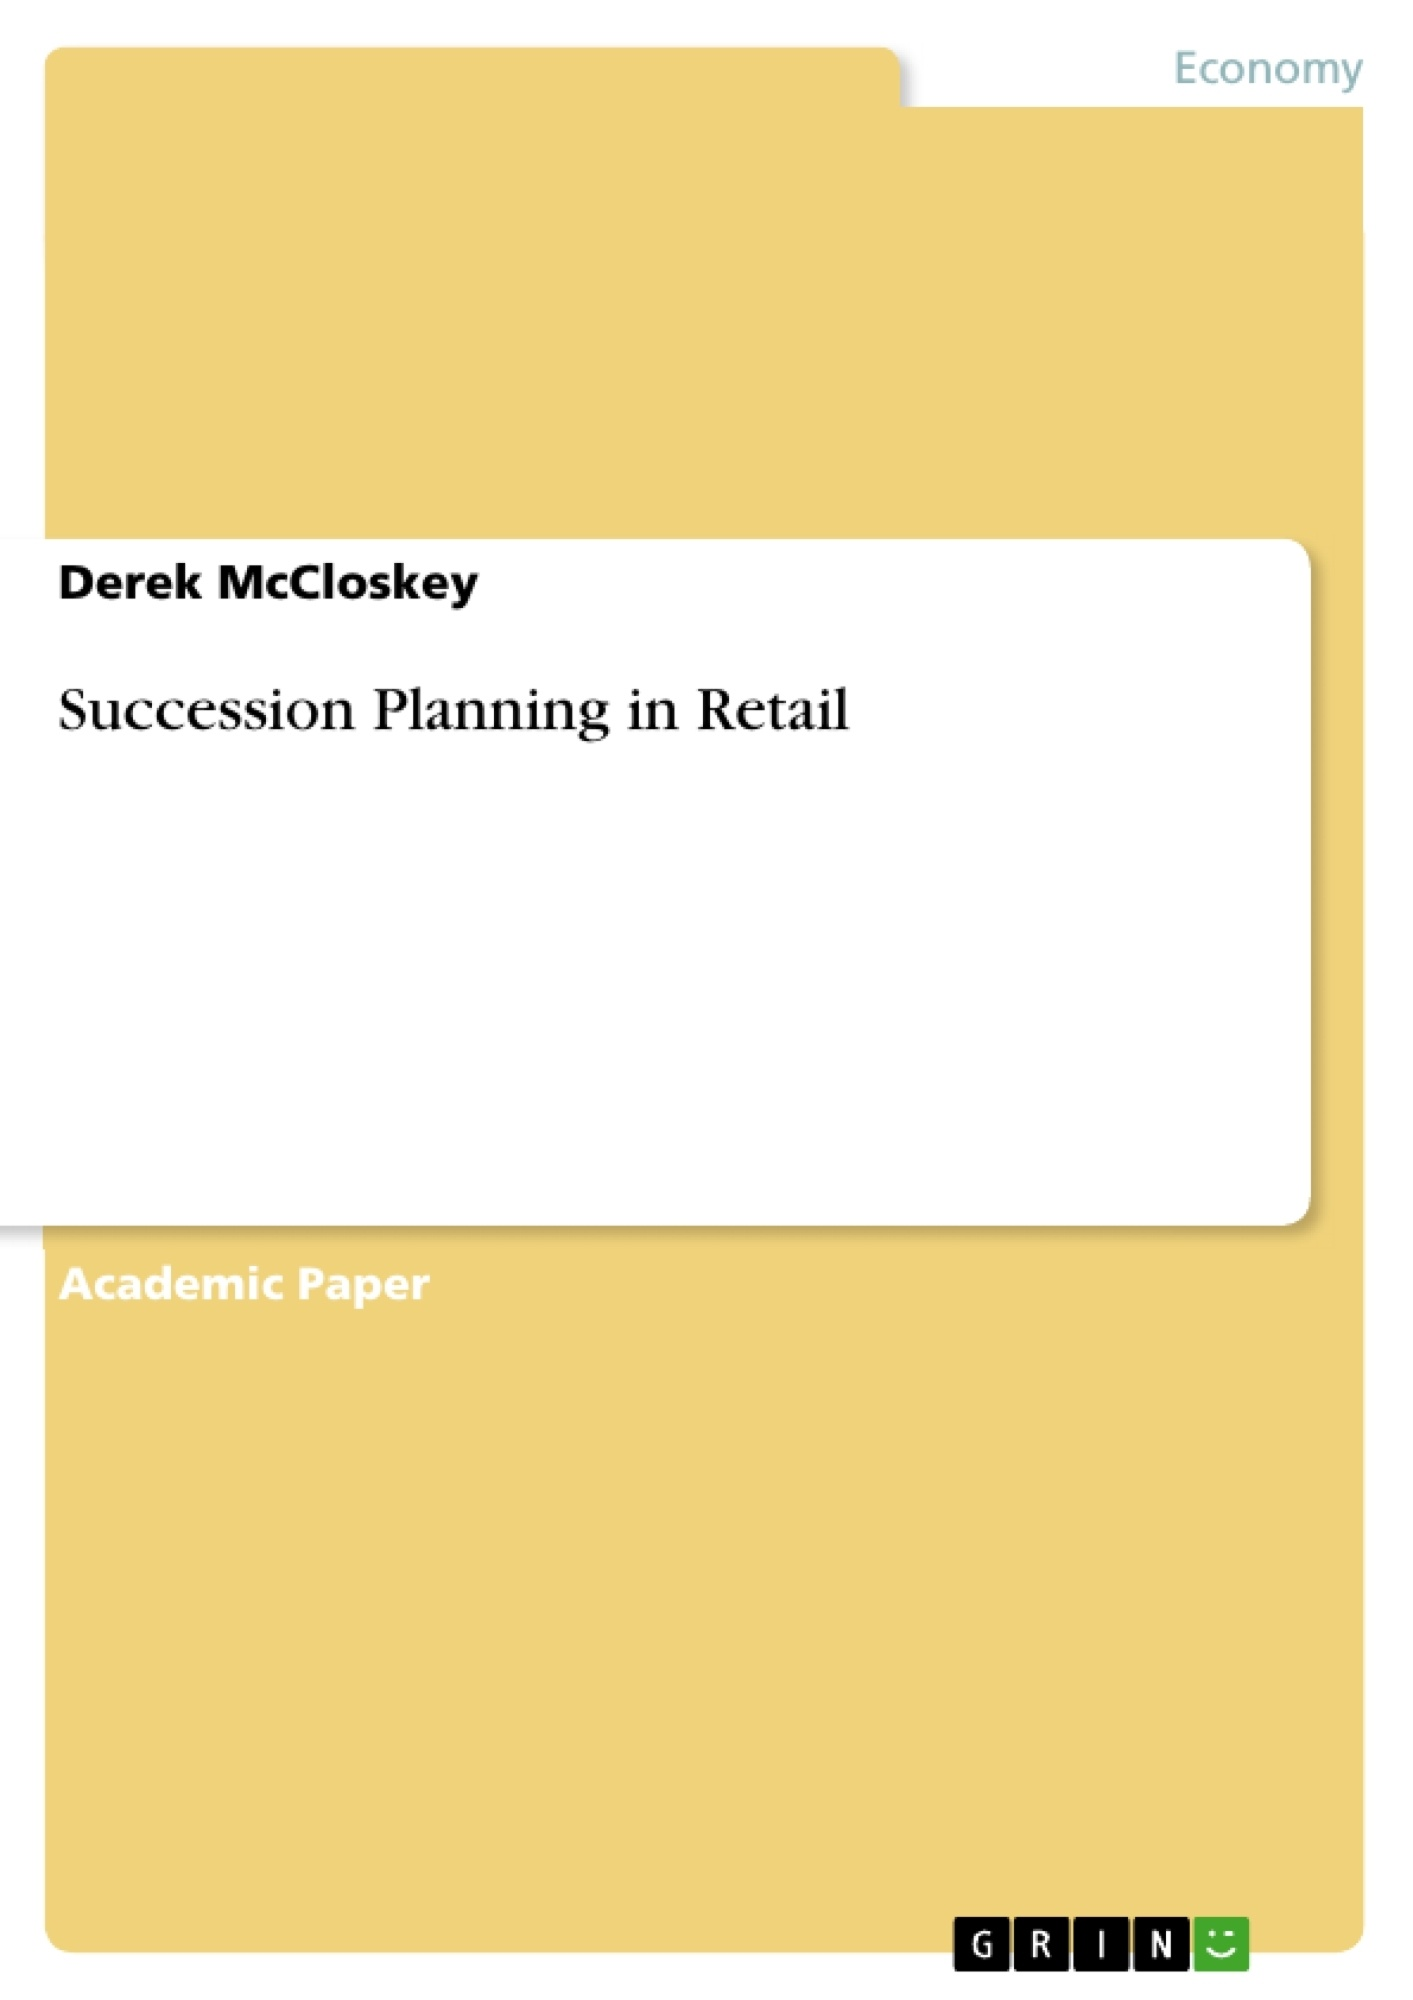 Title: Succession Planning in Retail